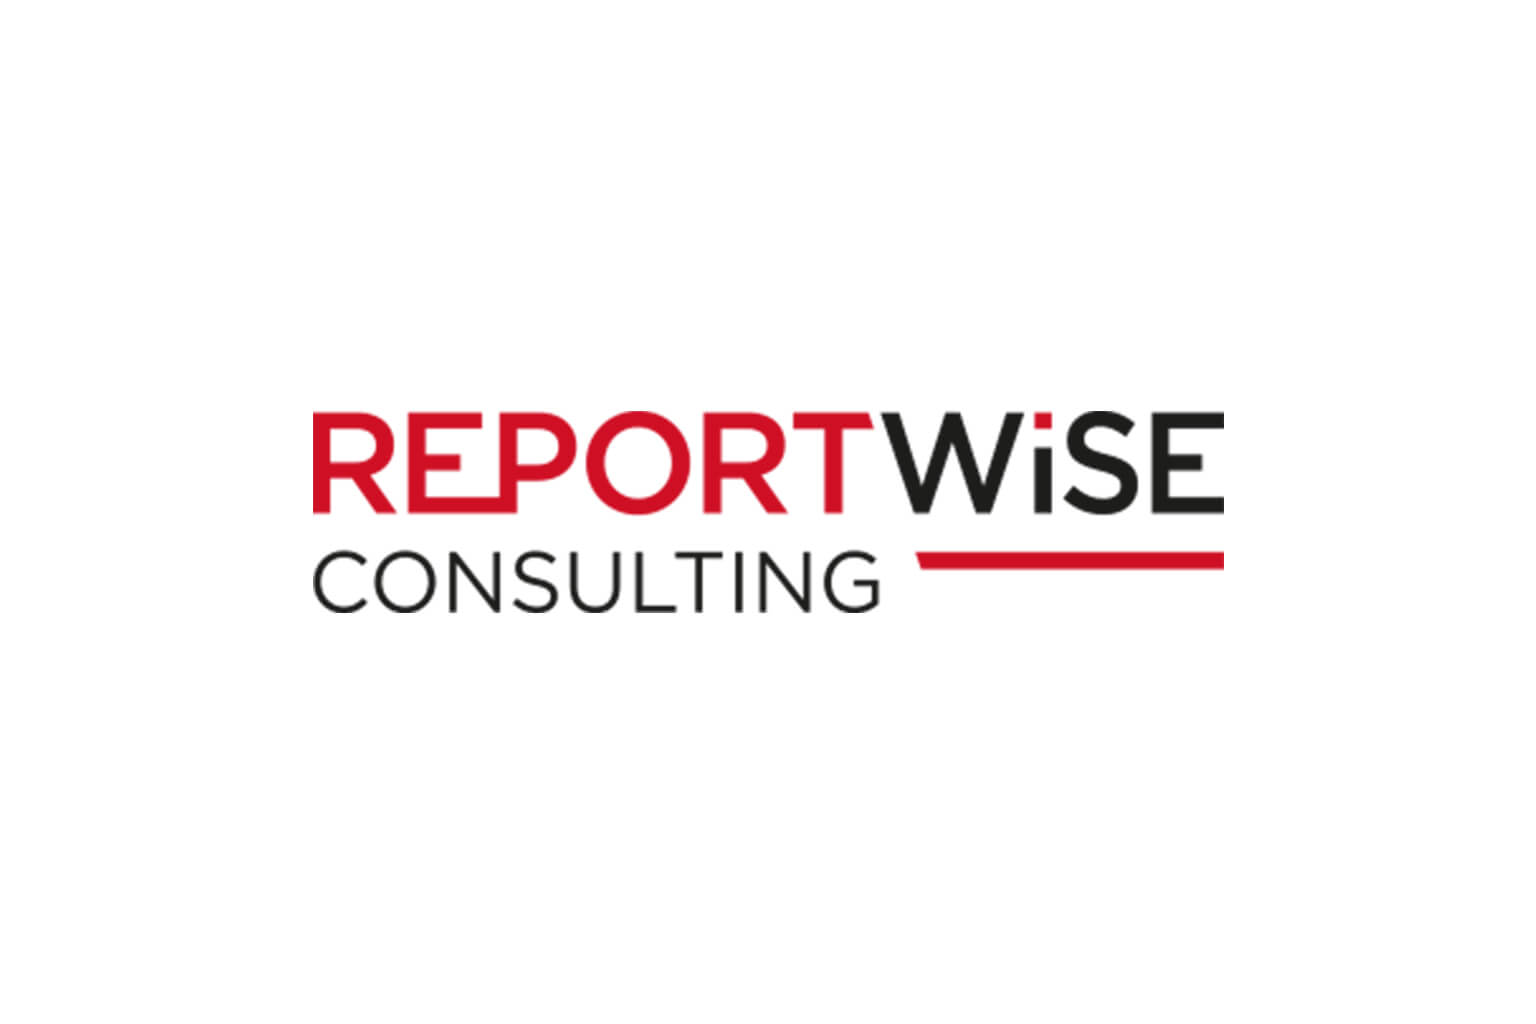 REPORTWISE